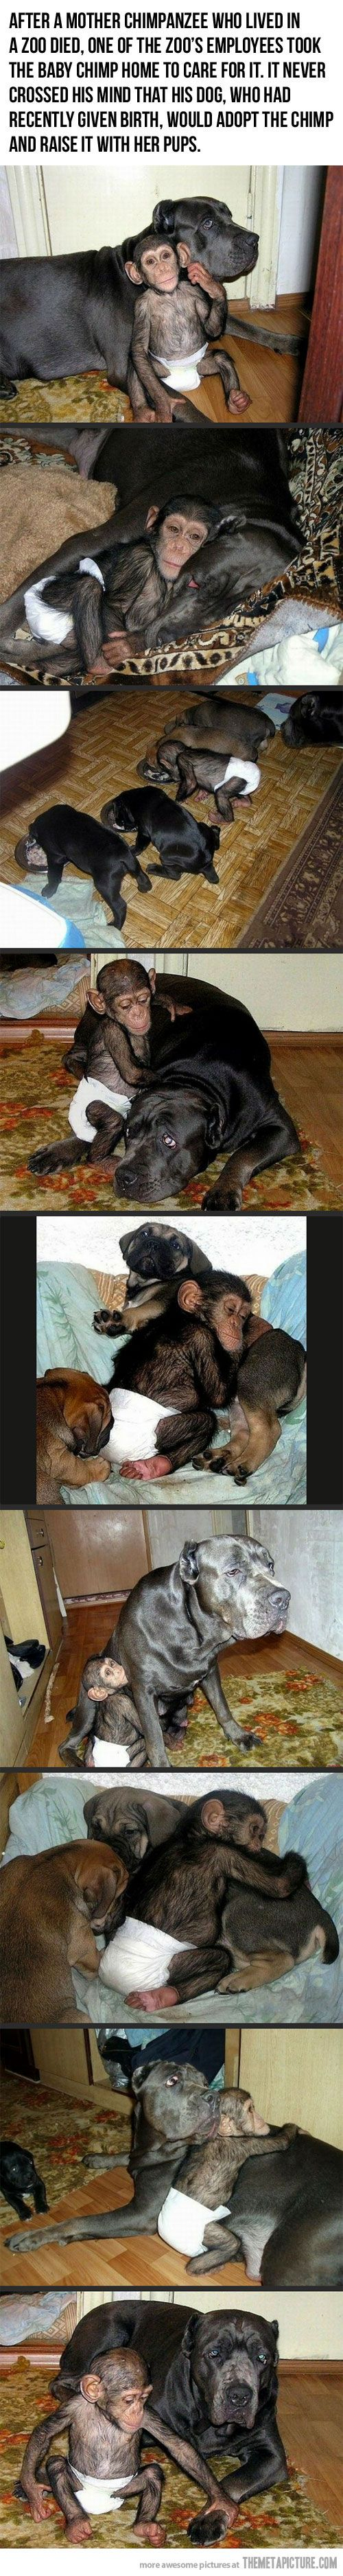 Remarkable!: Dogs Adoption, Baby Monkey, Baby Chimpanzee, My Heart, The Zoos, Heart Warm, So Sweet, Cutest Things Ever, Big Dogs